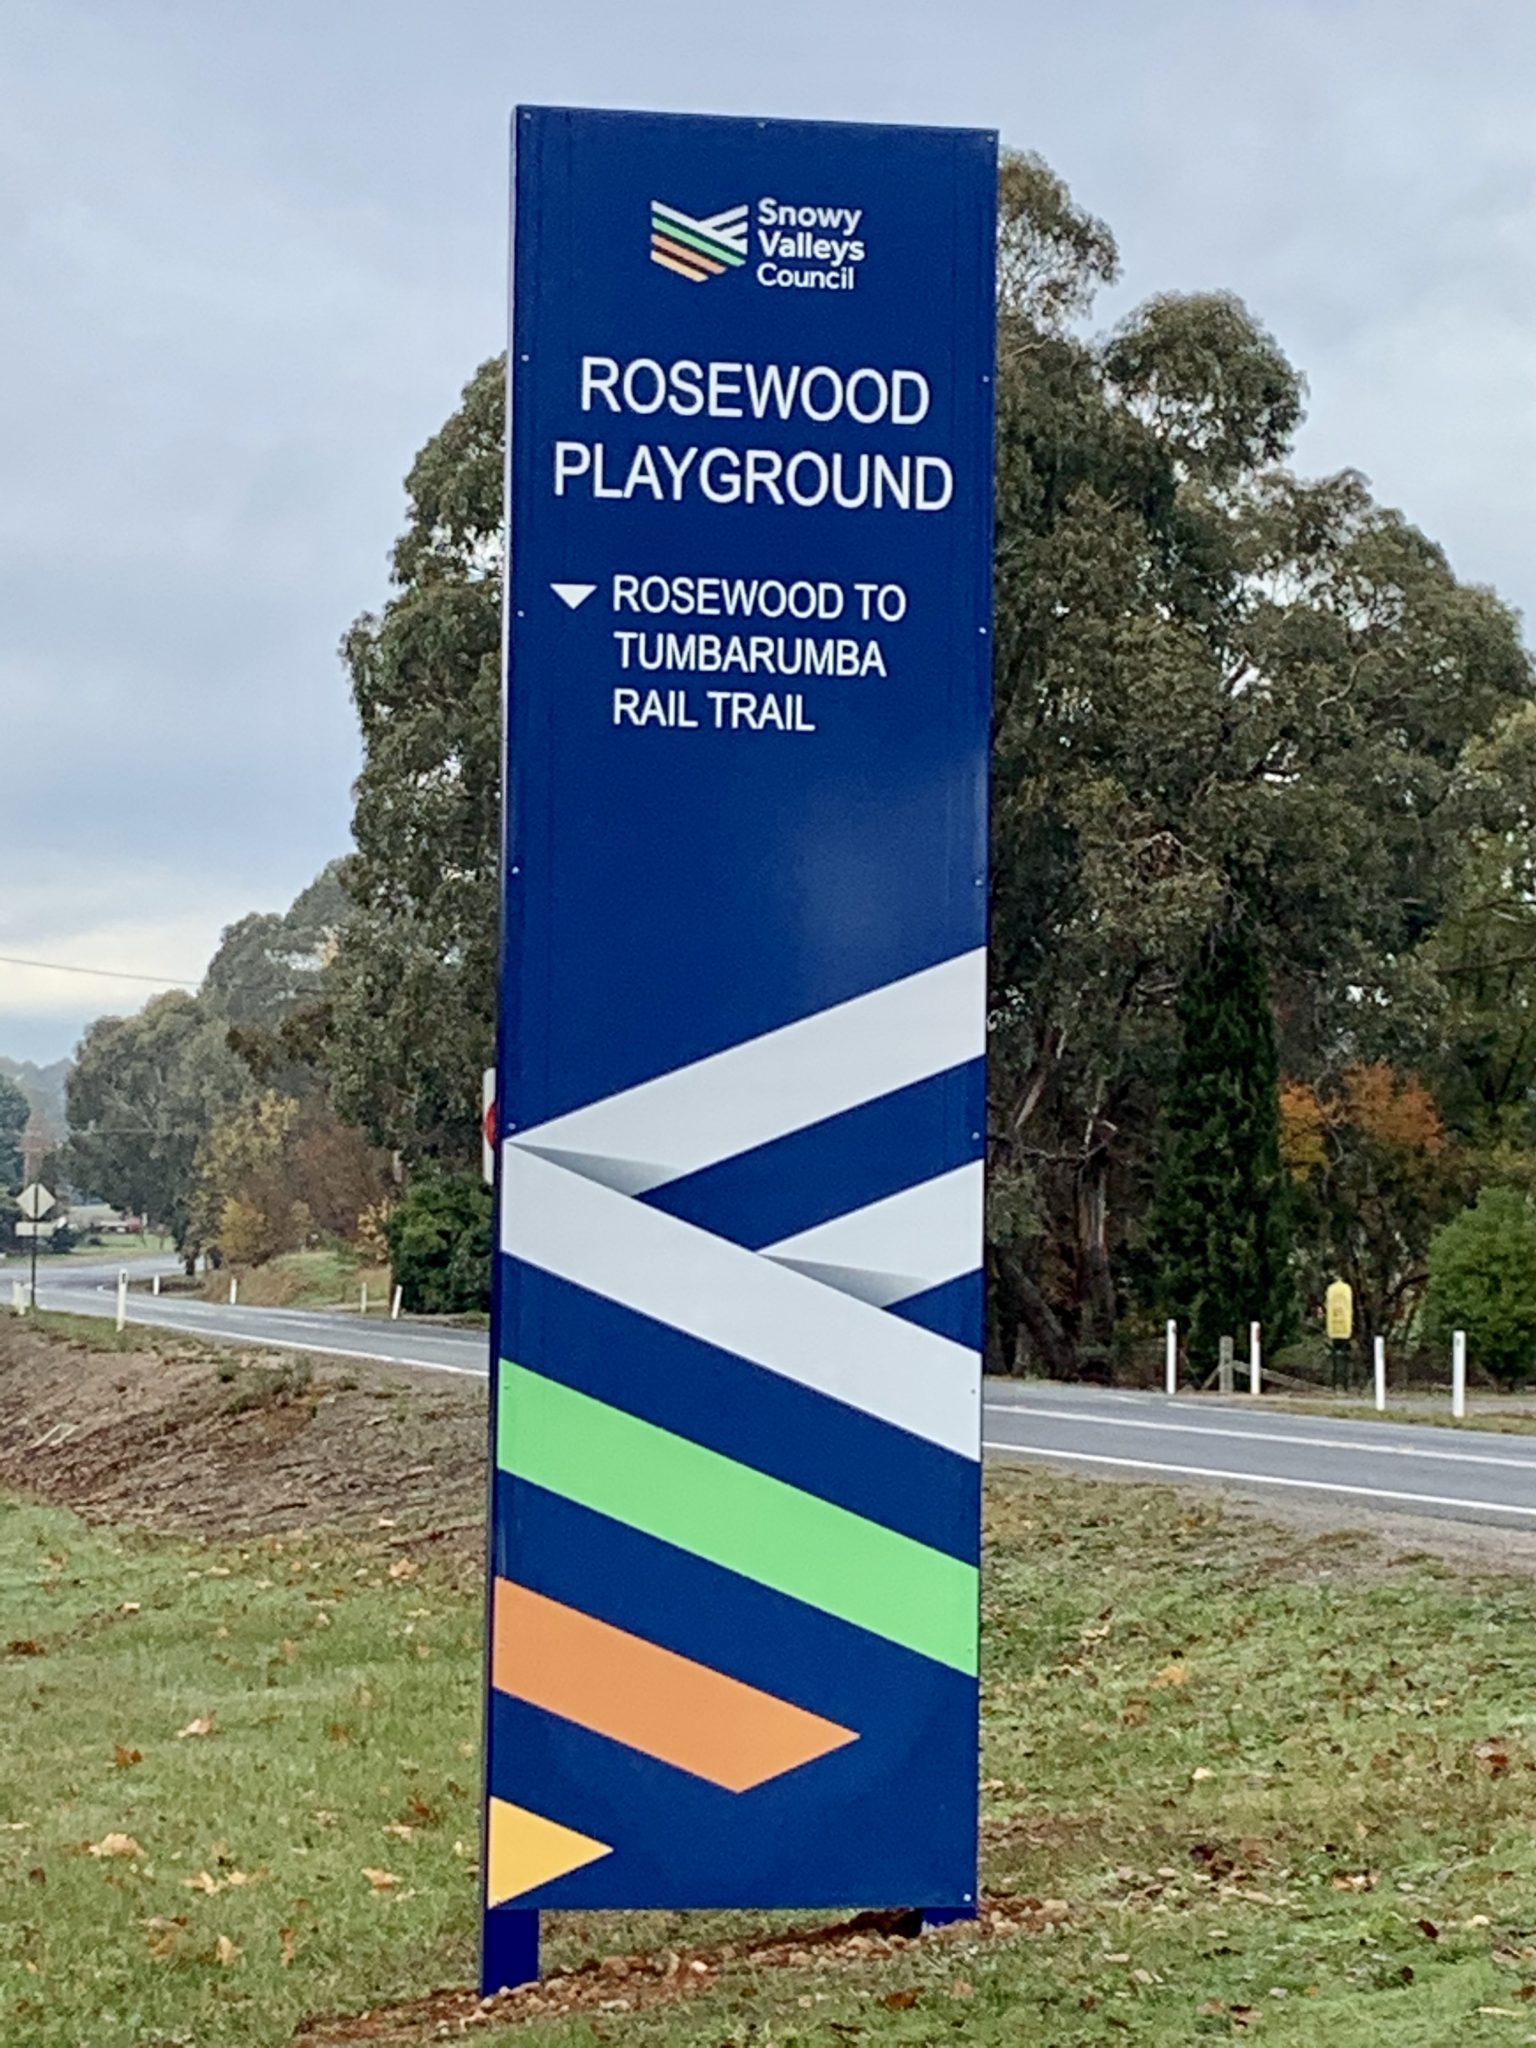 Rosewood playground on the rail trail